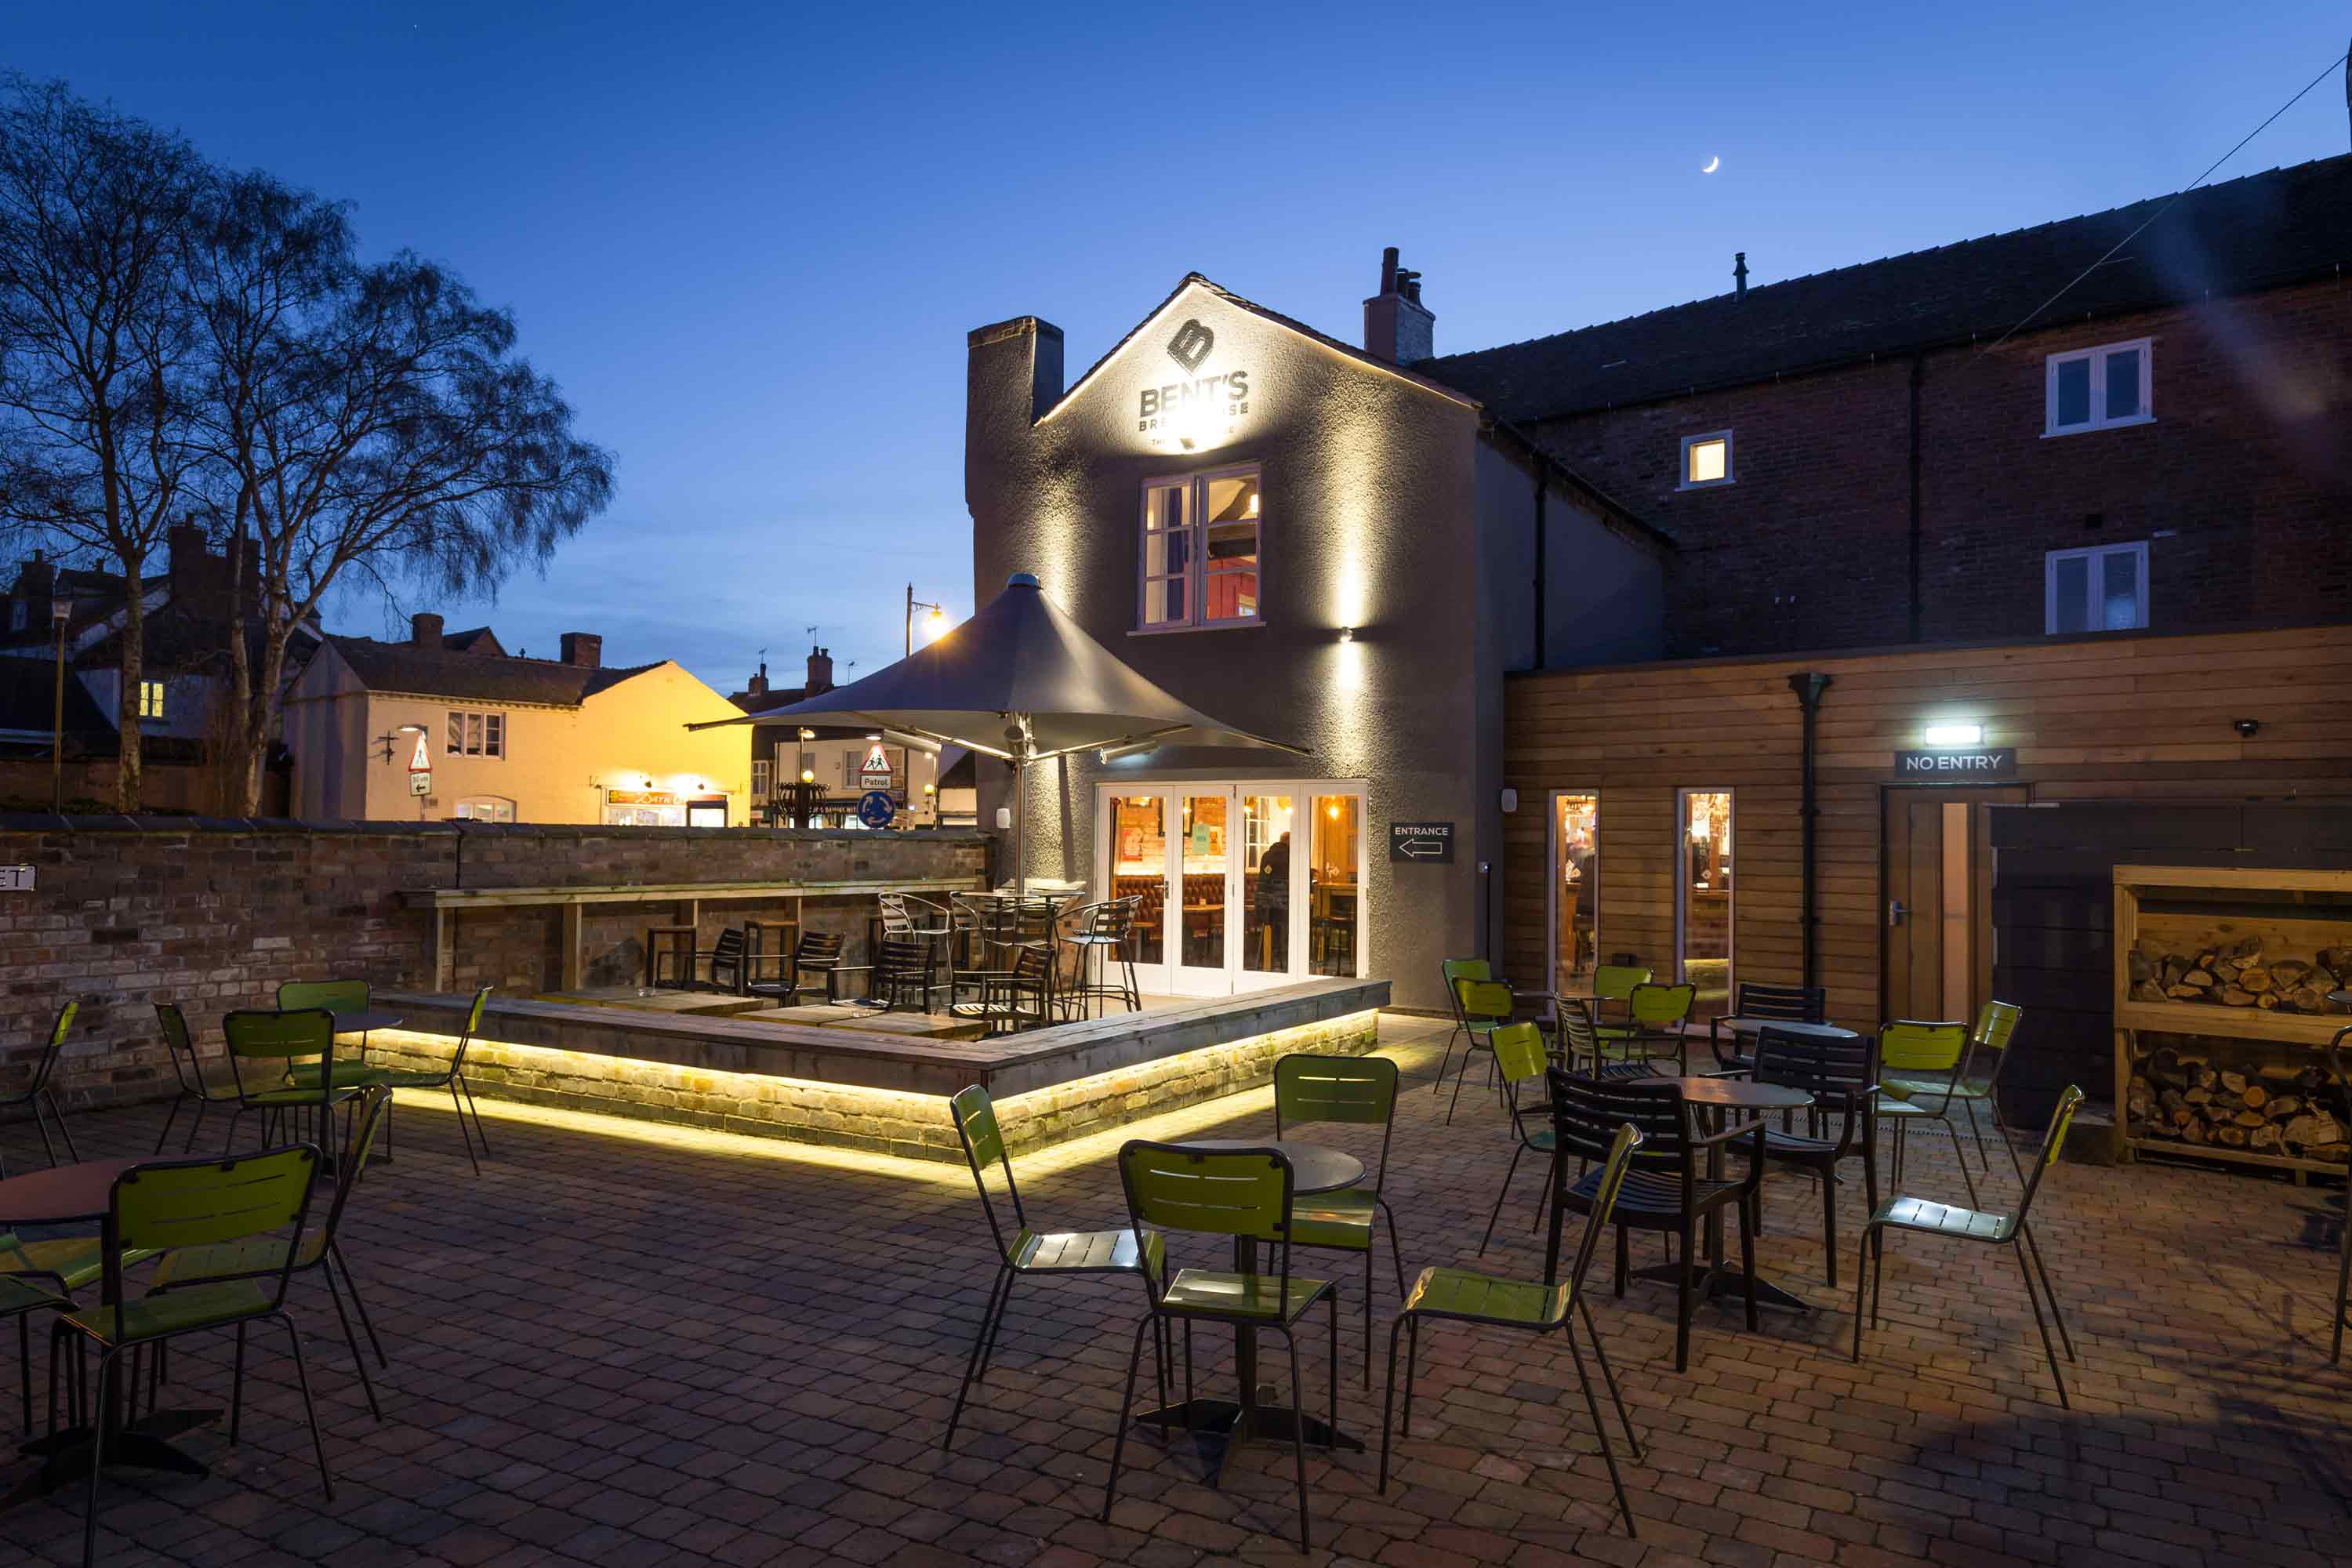 conservation architecture in eccleshall staffordshire brewery guest house hotel outside seating area lighting